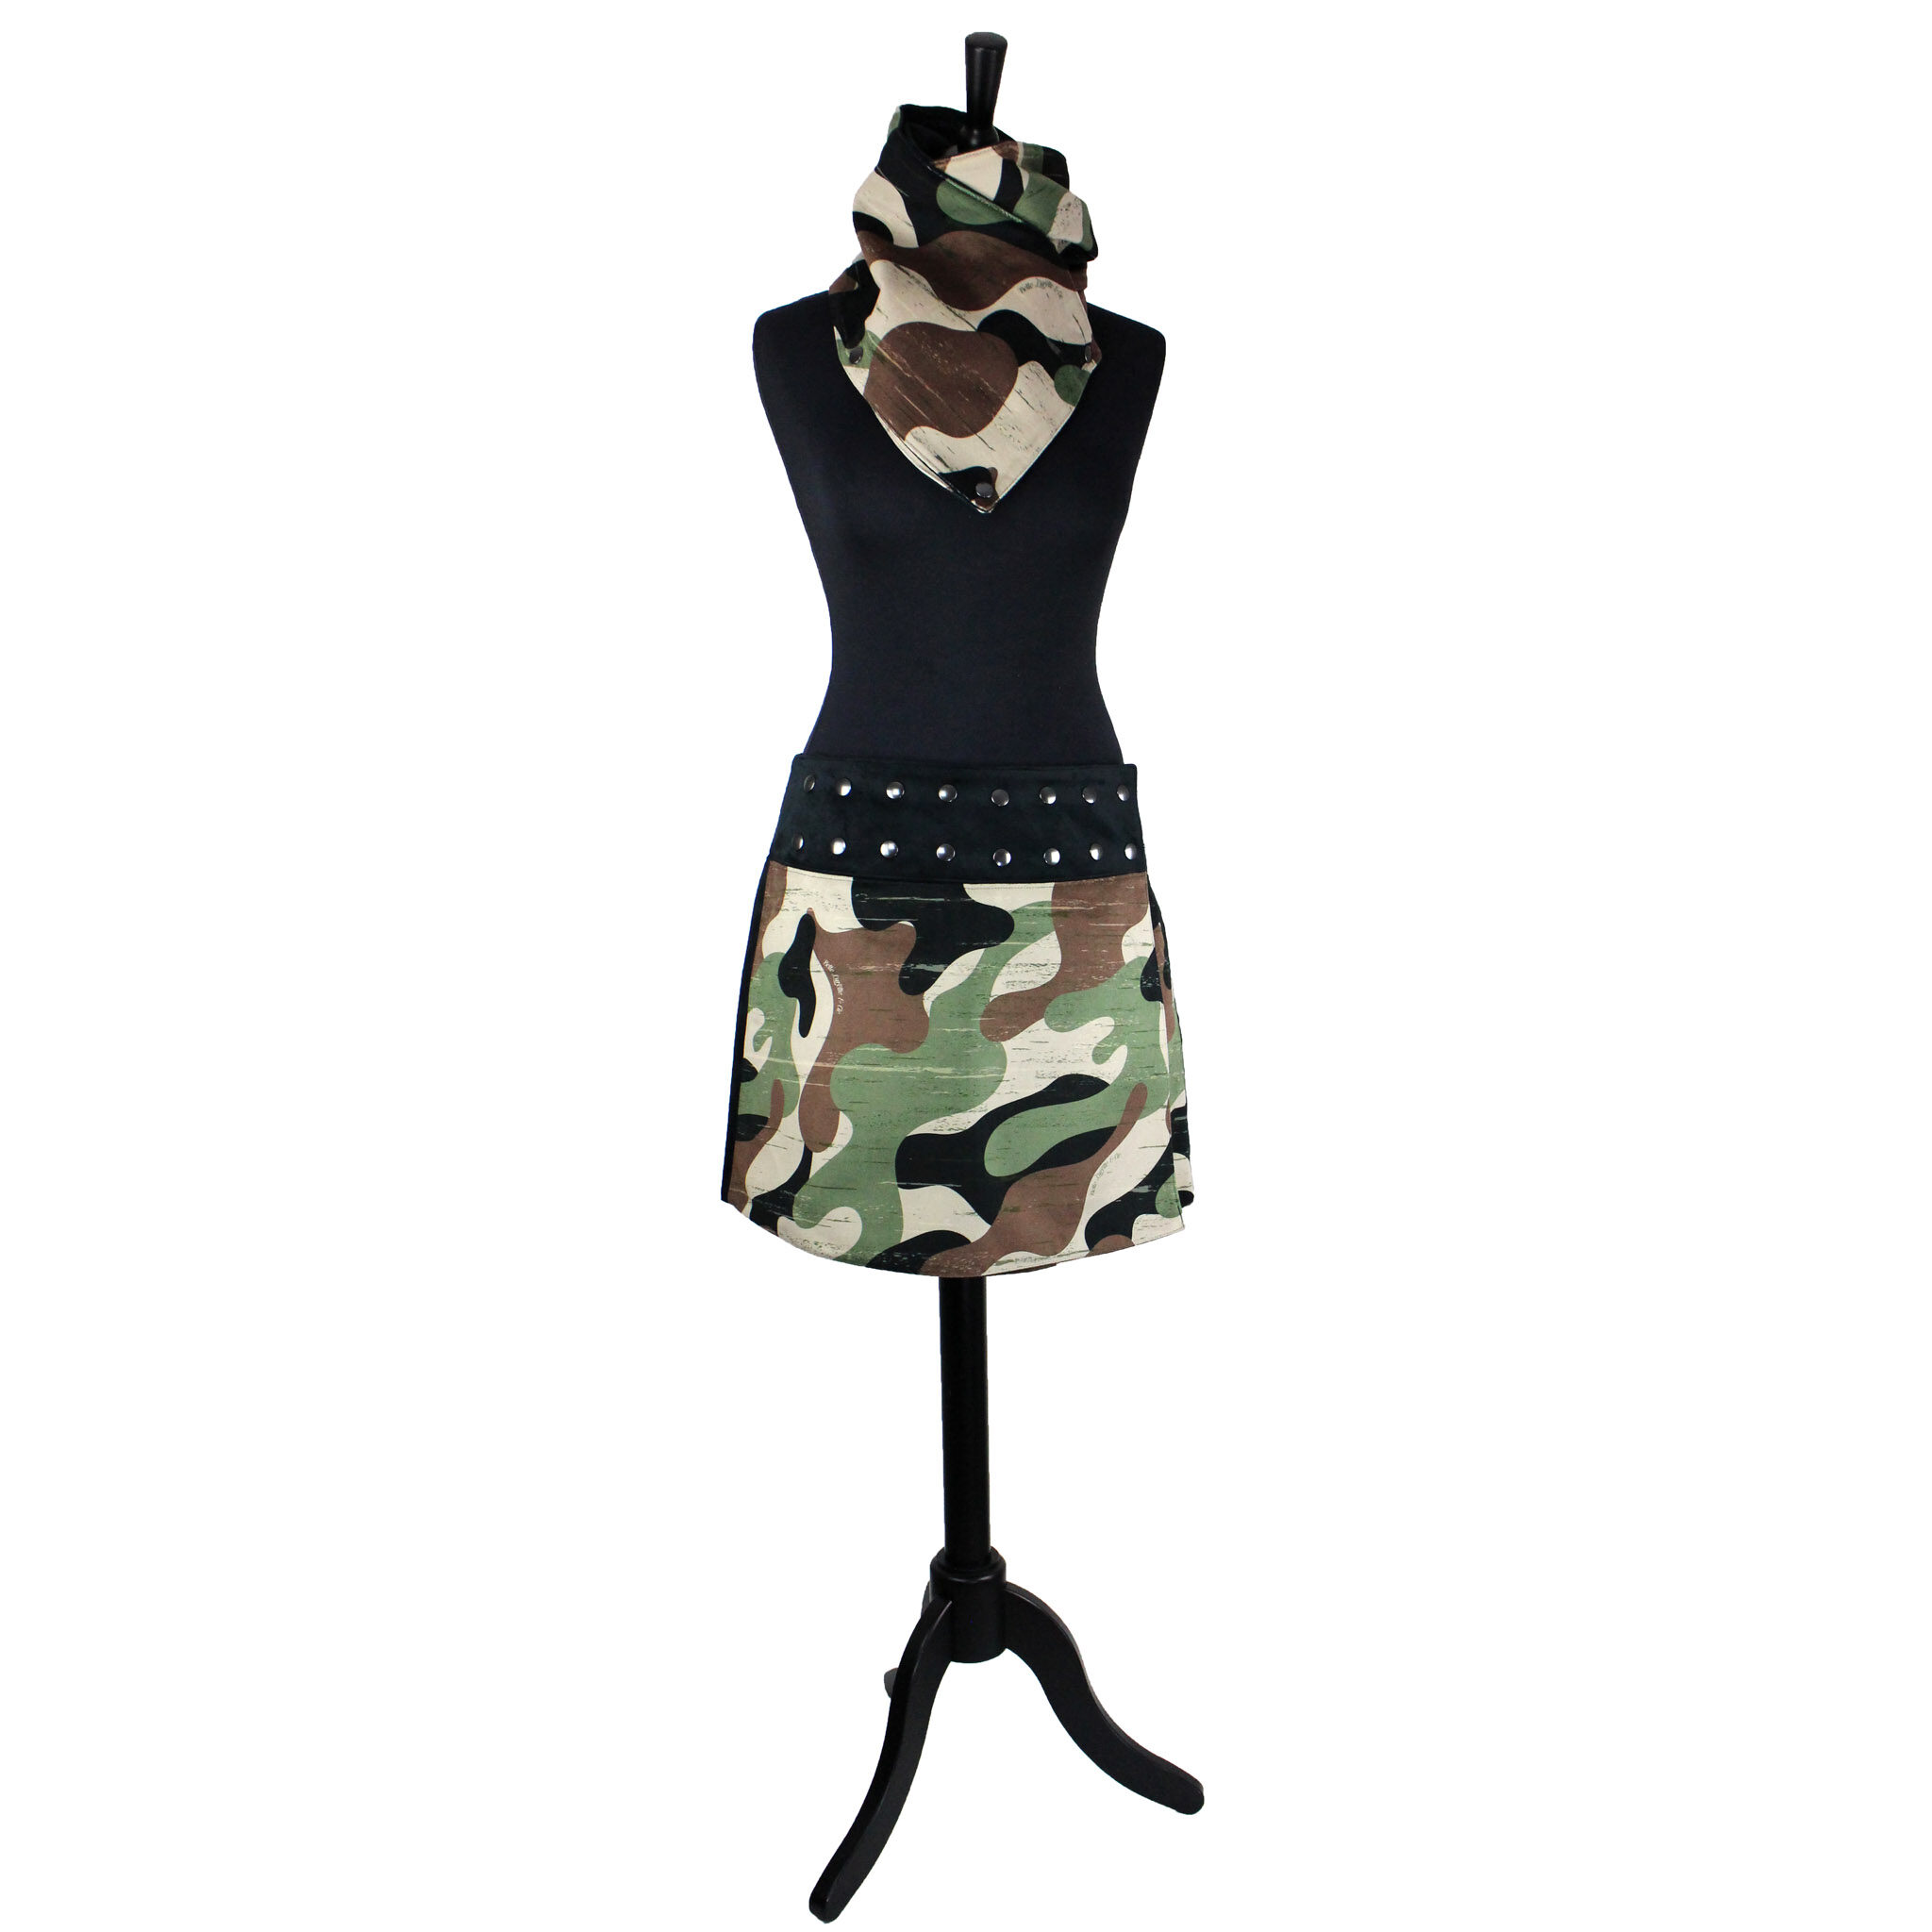 Jupe Pression Camouflage vert